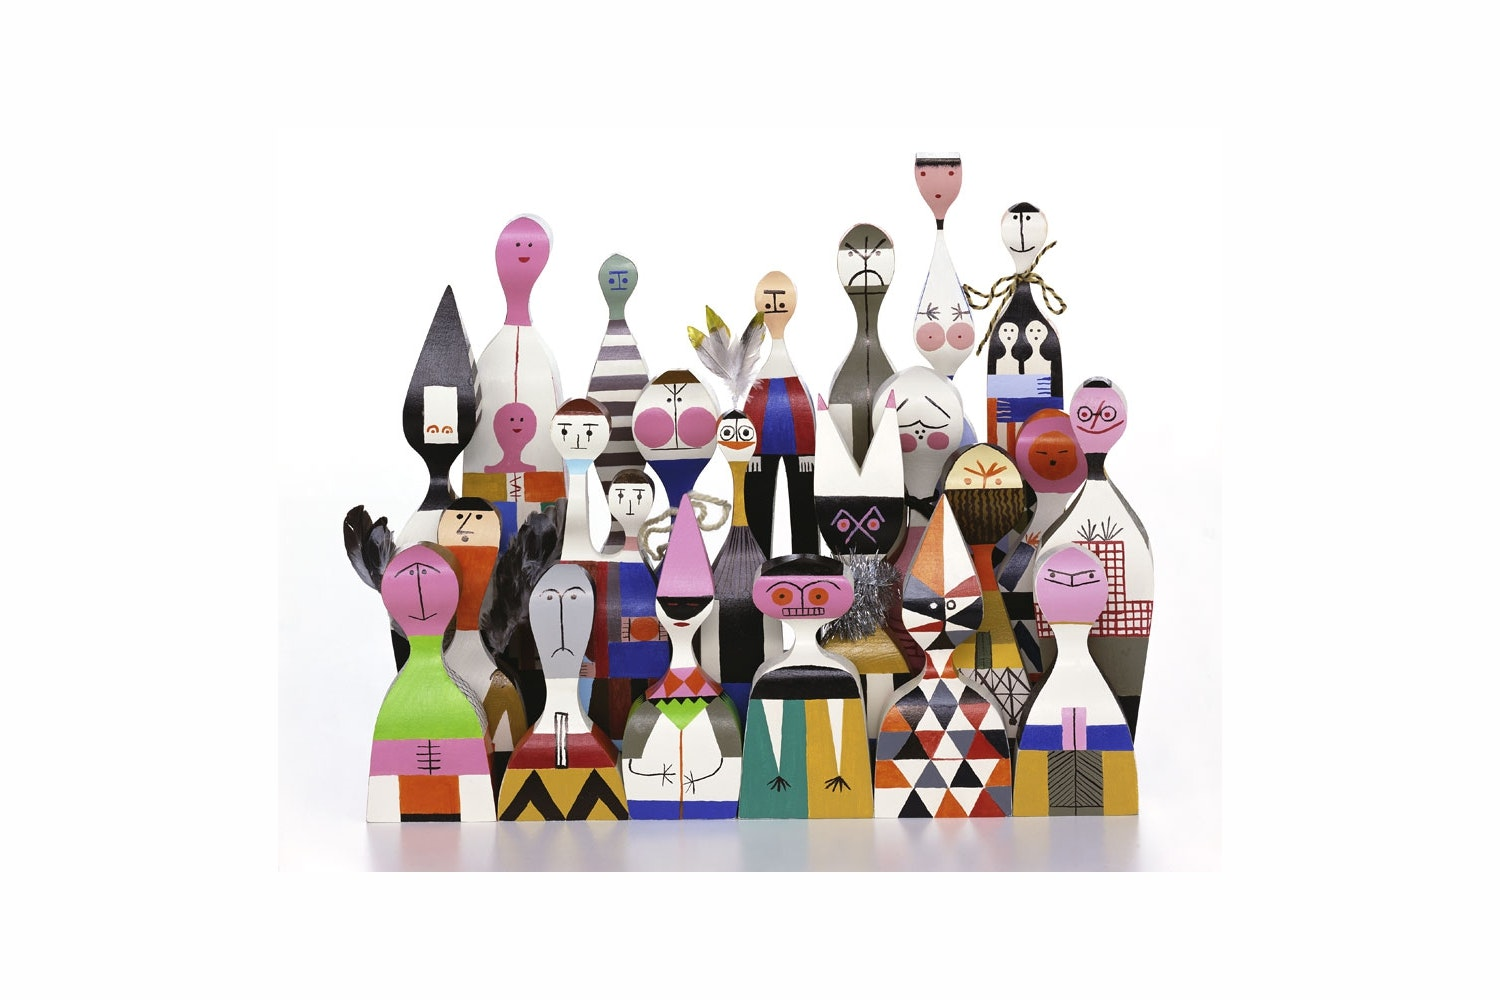 Wooden Dolls by Alexander Girard for Vitra